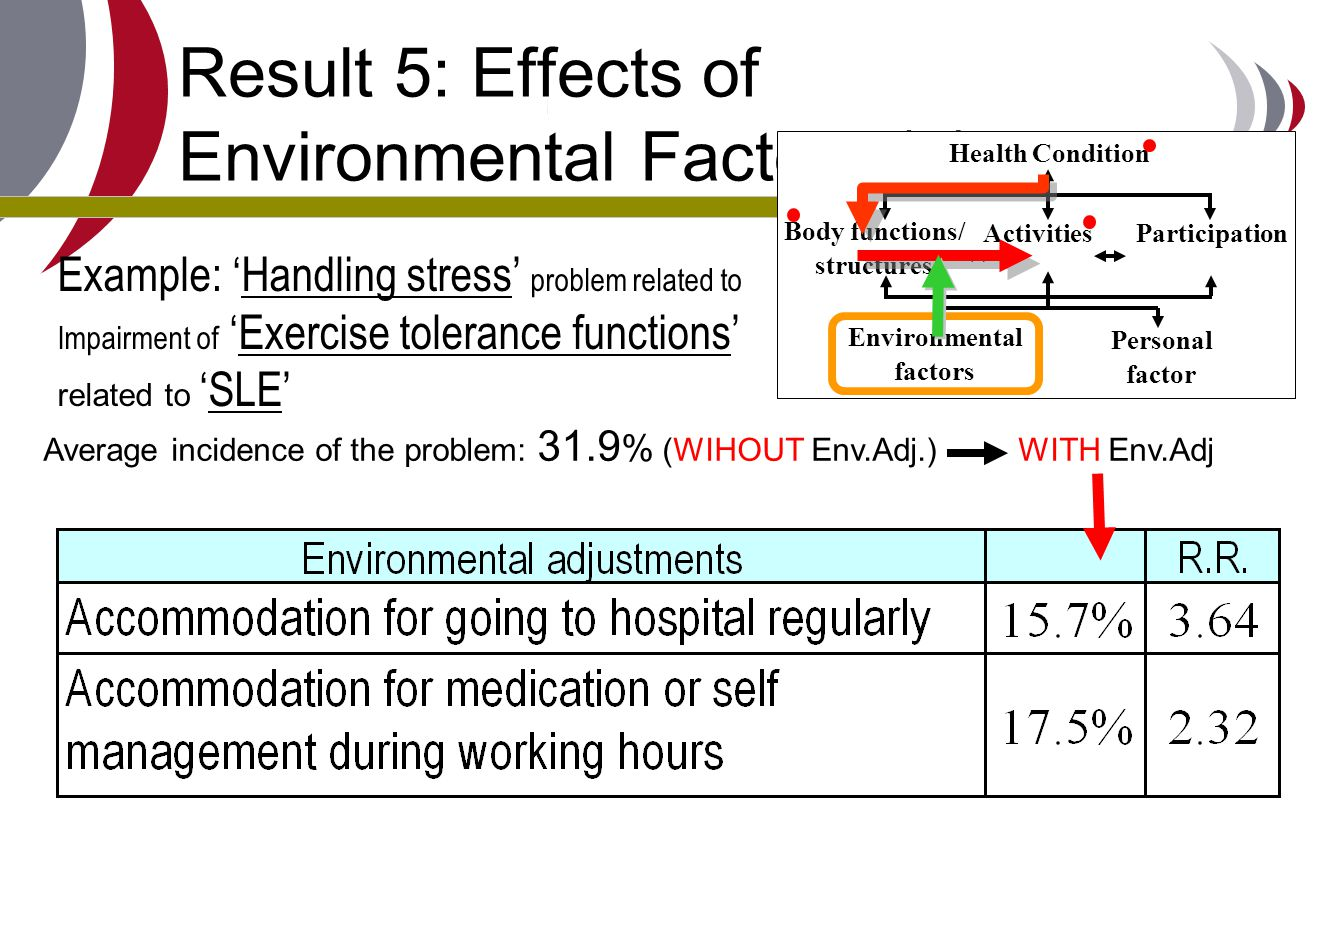 Result 5: Effects of Environmental Factors (3)